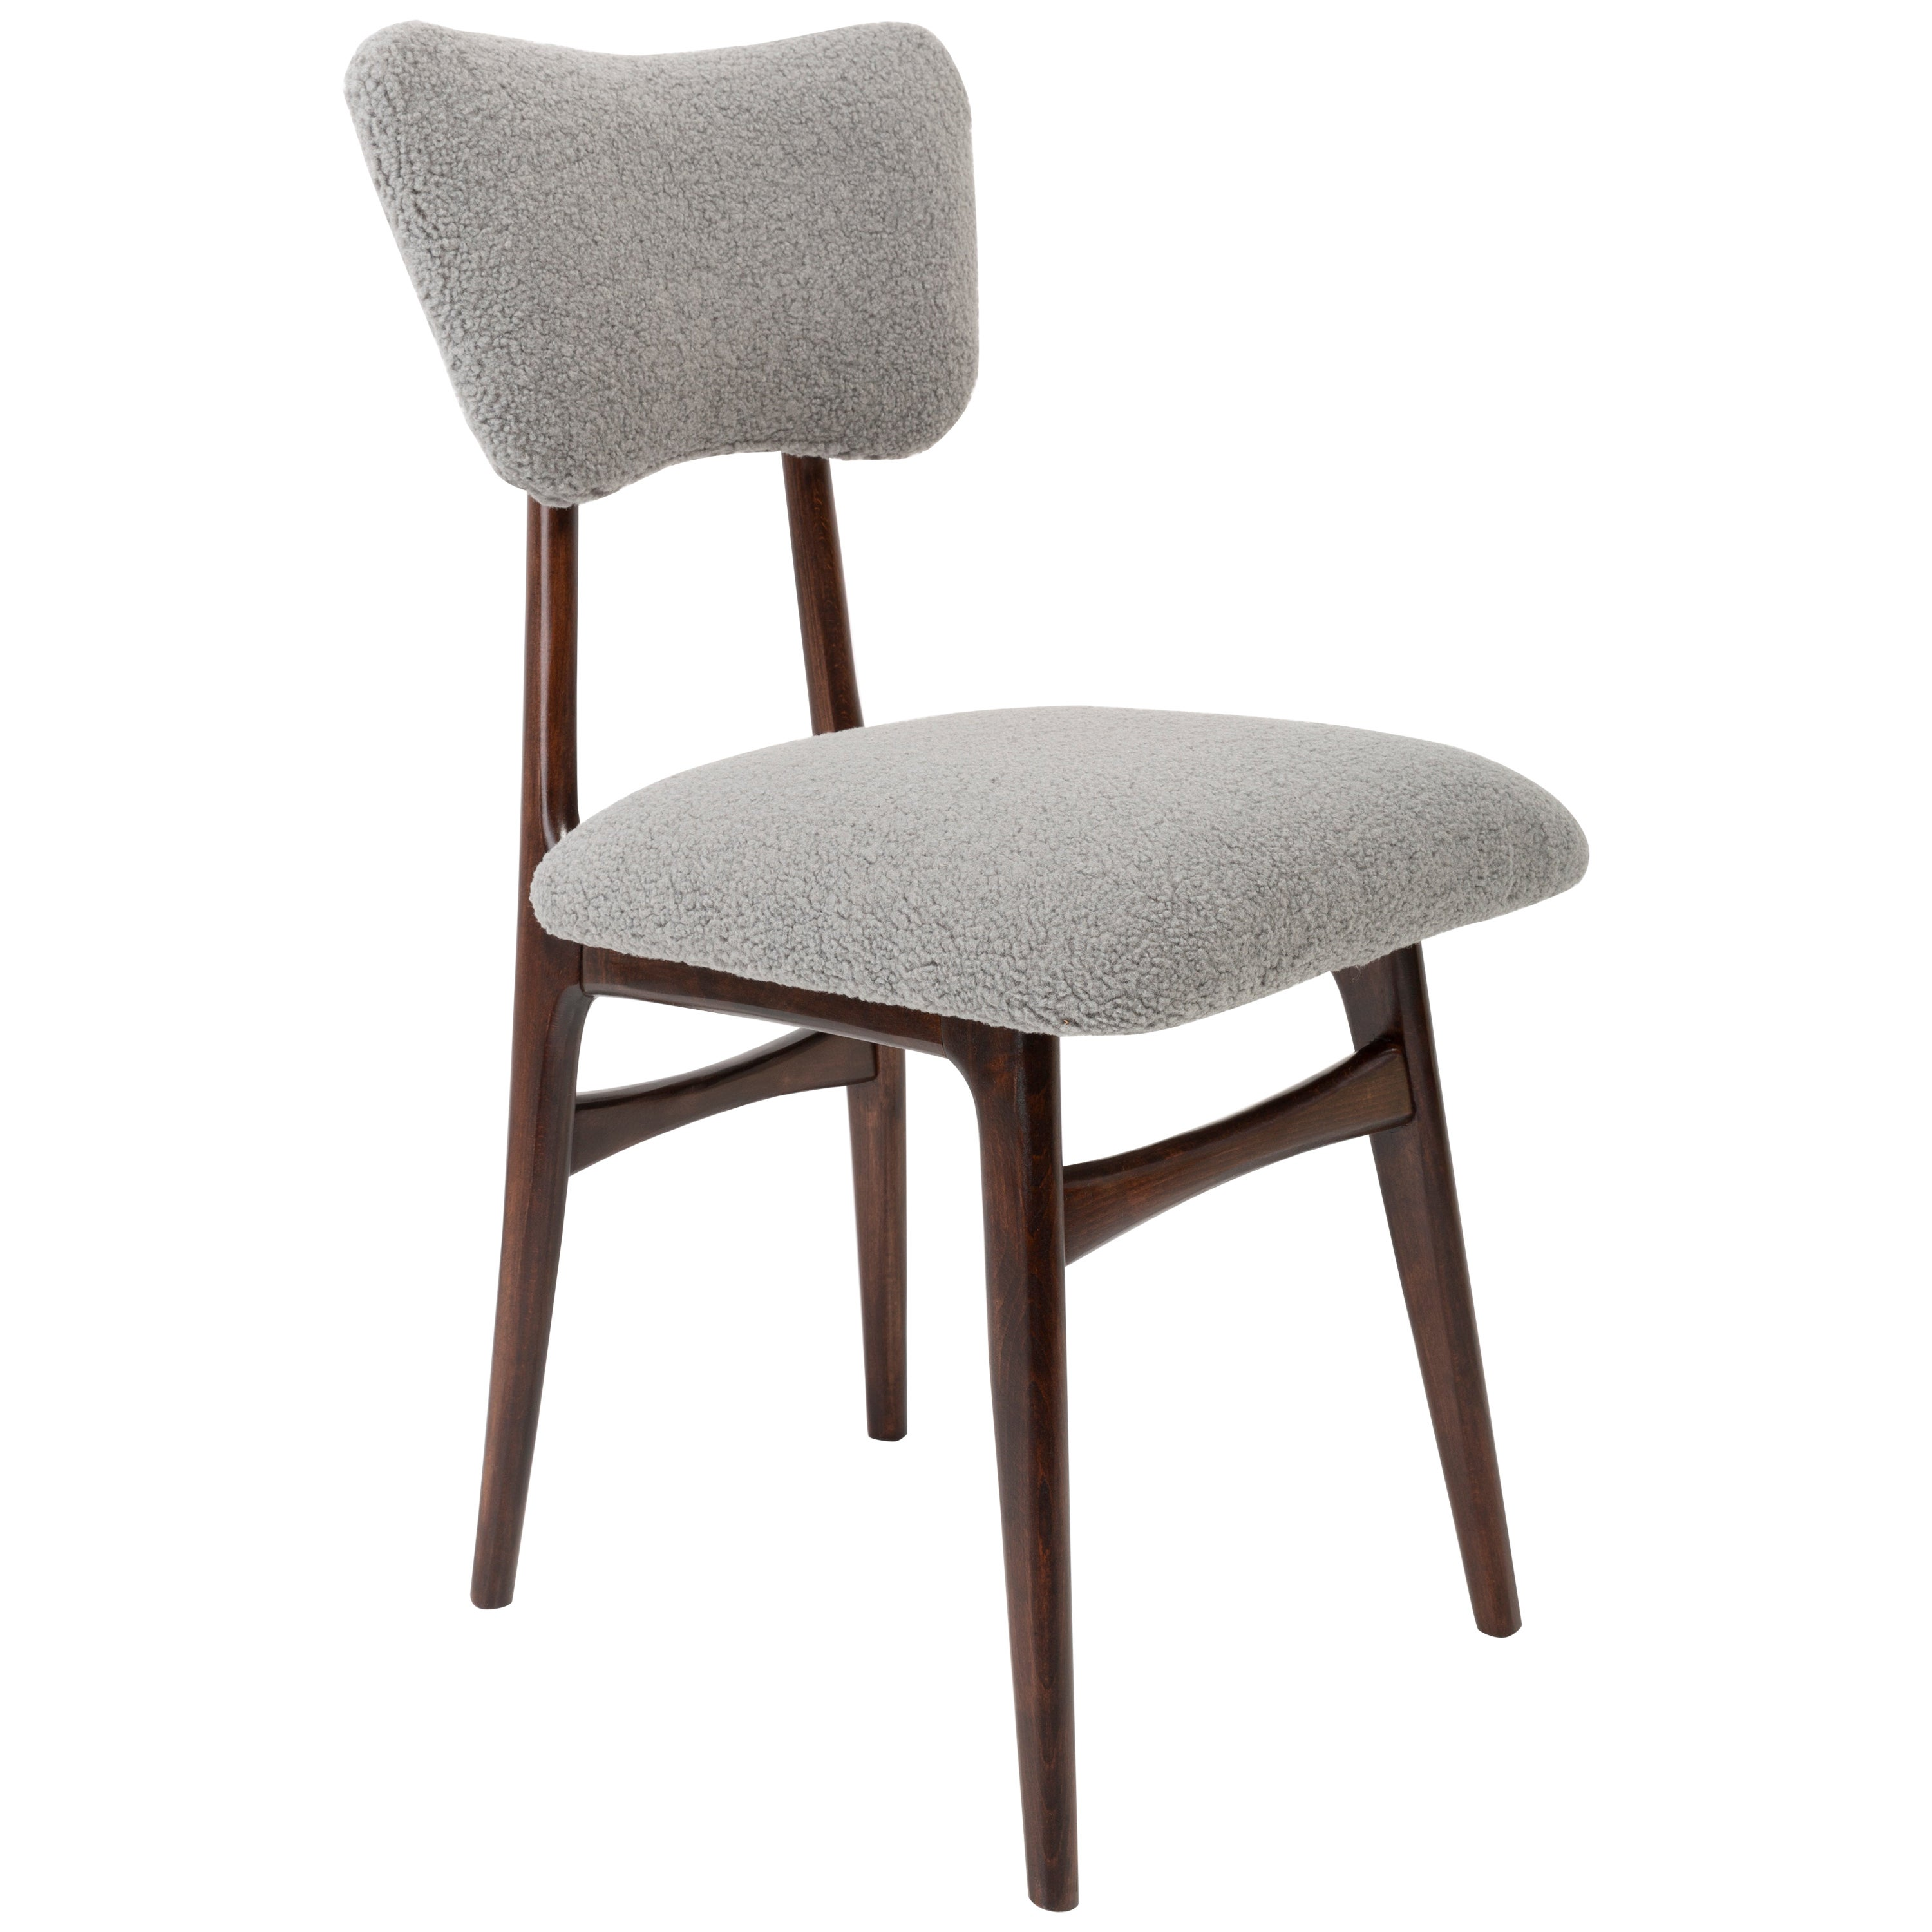 20th Century Gray Boucle Chair, 1960s